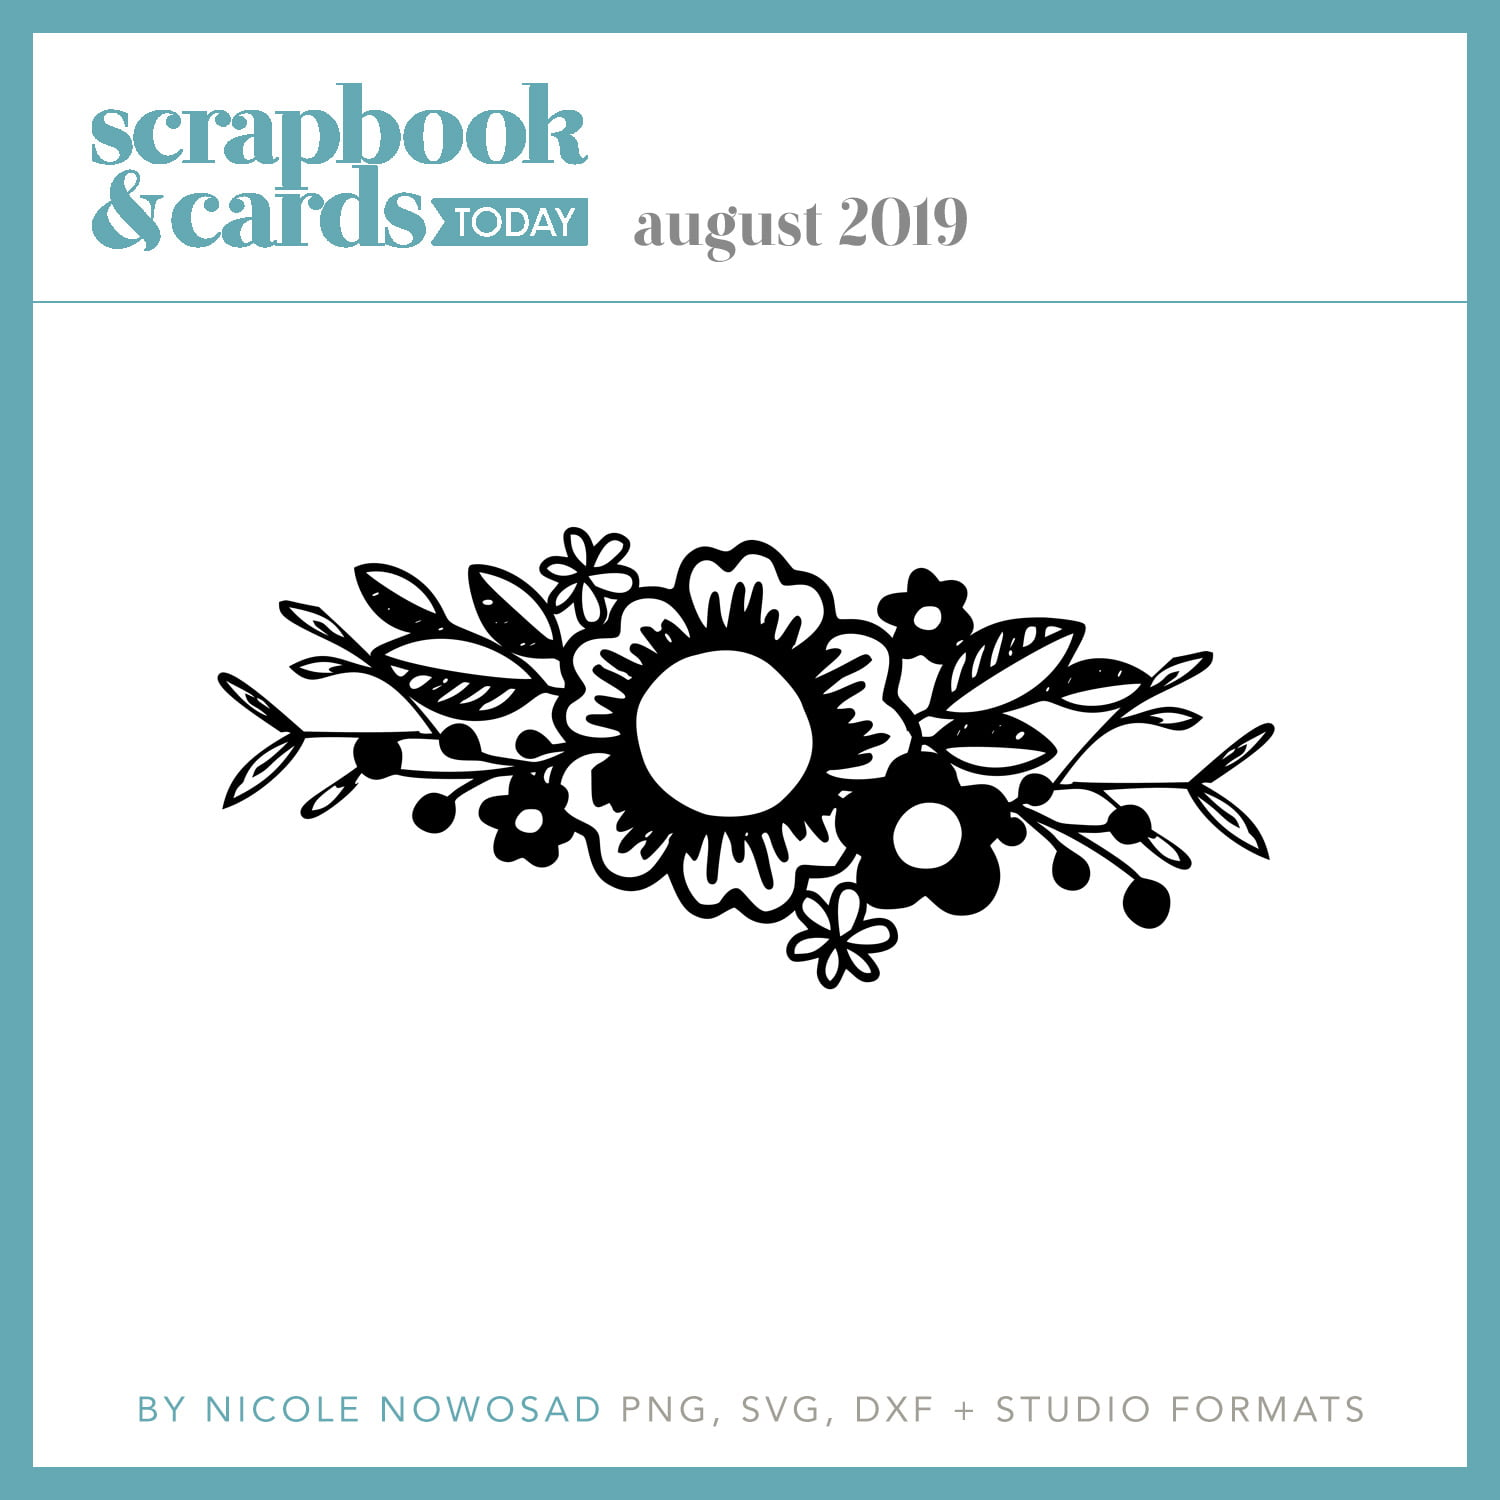 Scrapbook & Cards Today August 2019 Freebie